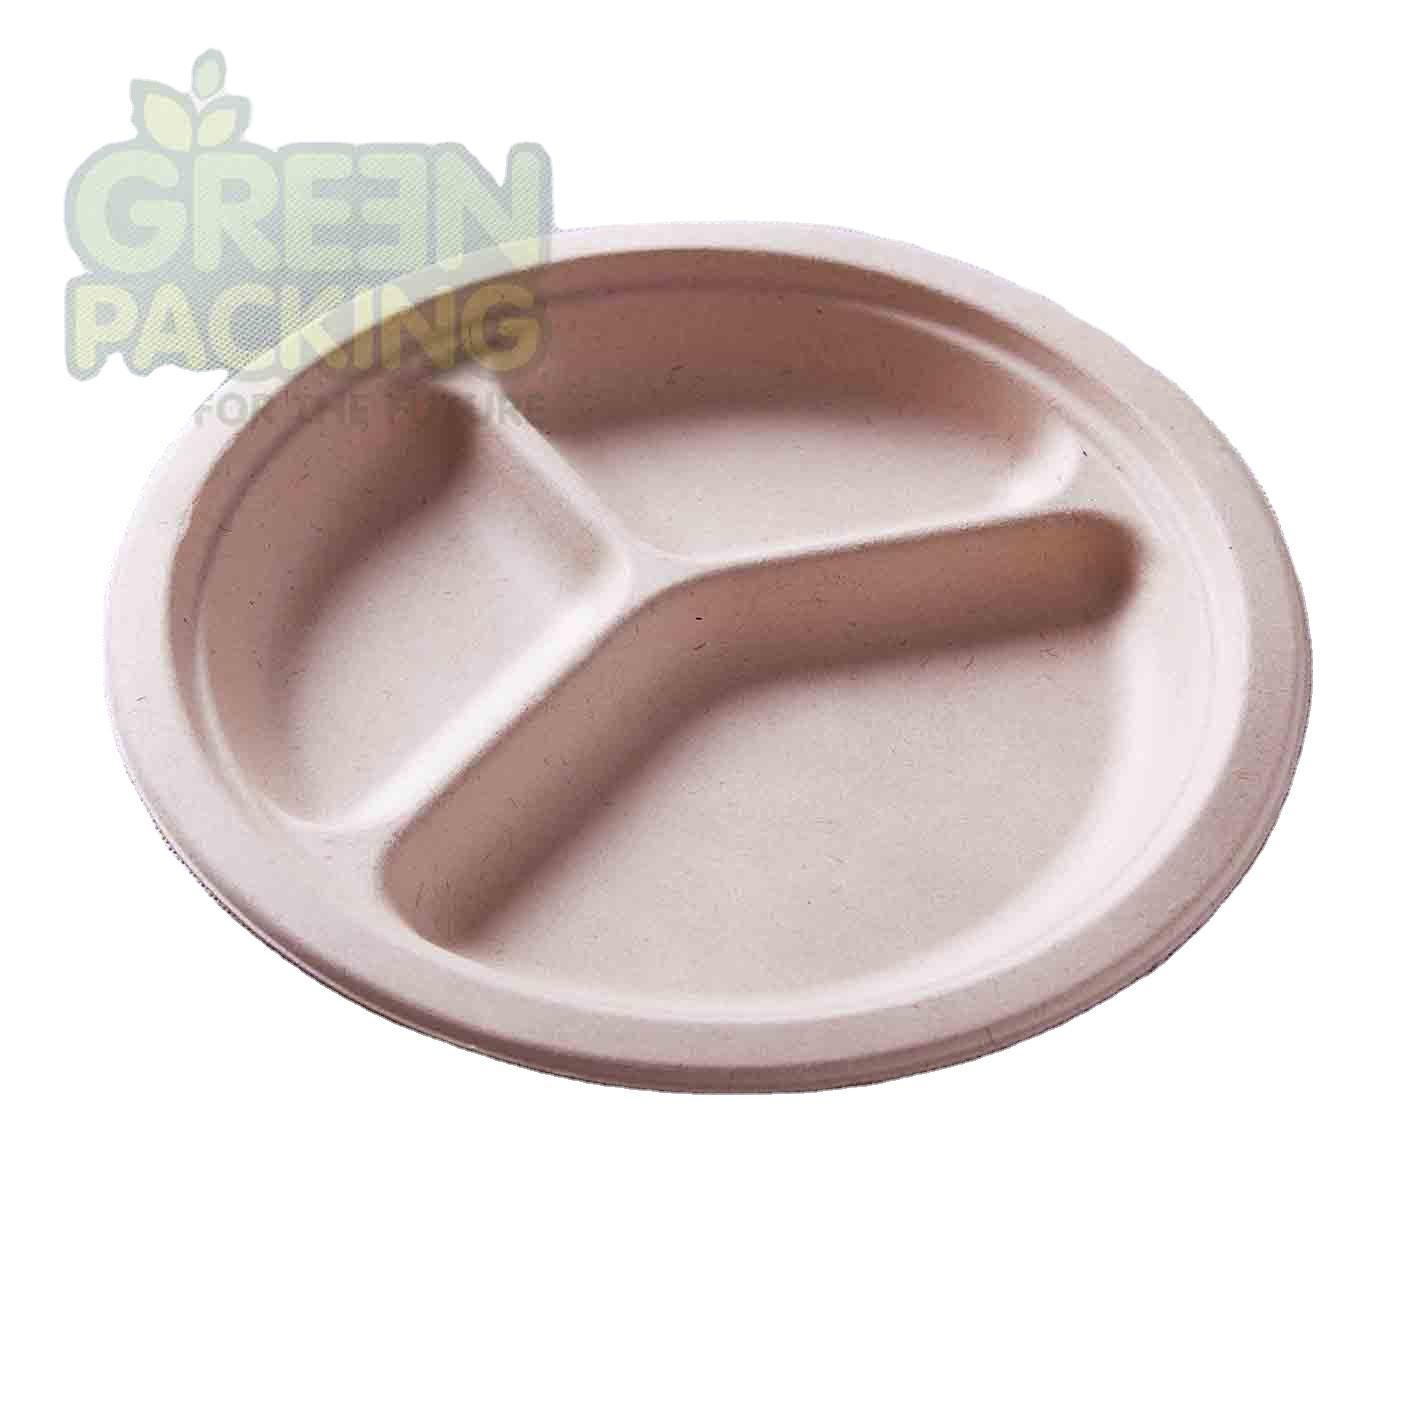 Eco friendly sugarcane bagasse products disposable to go plates compostable biodegradable tableware